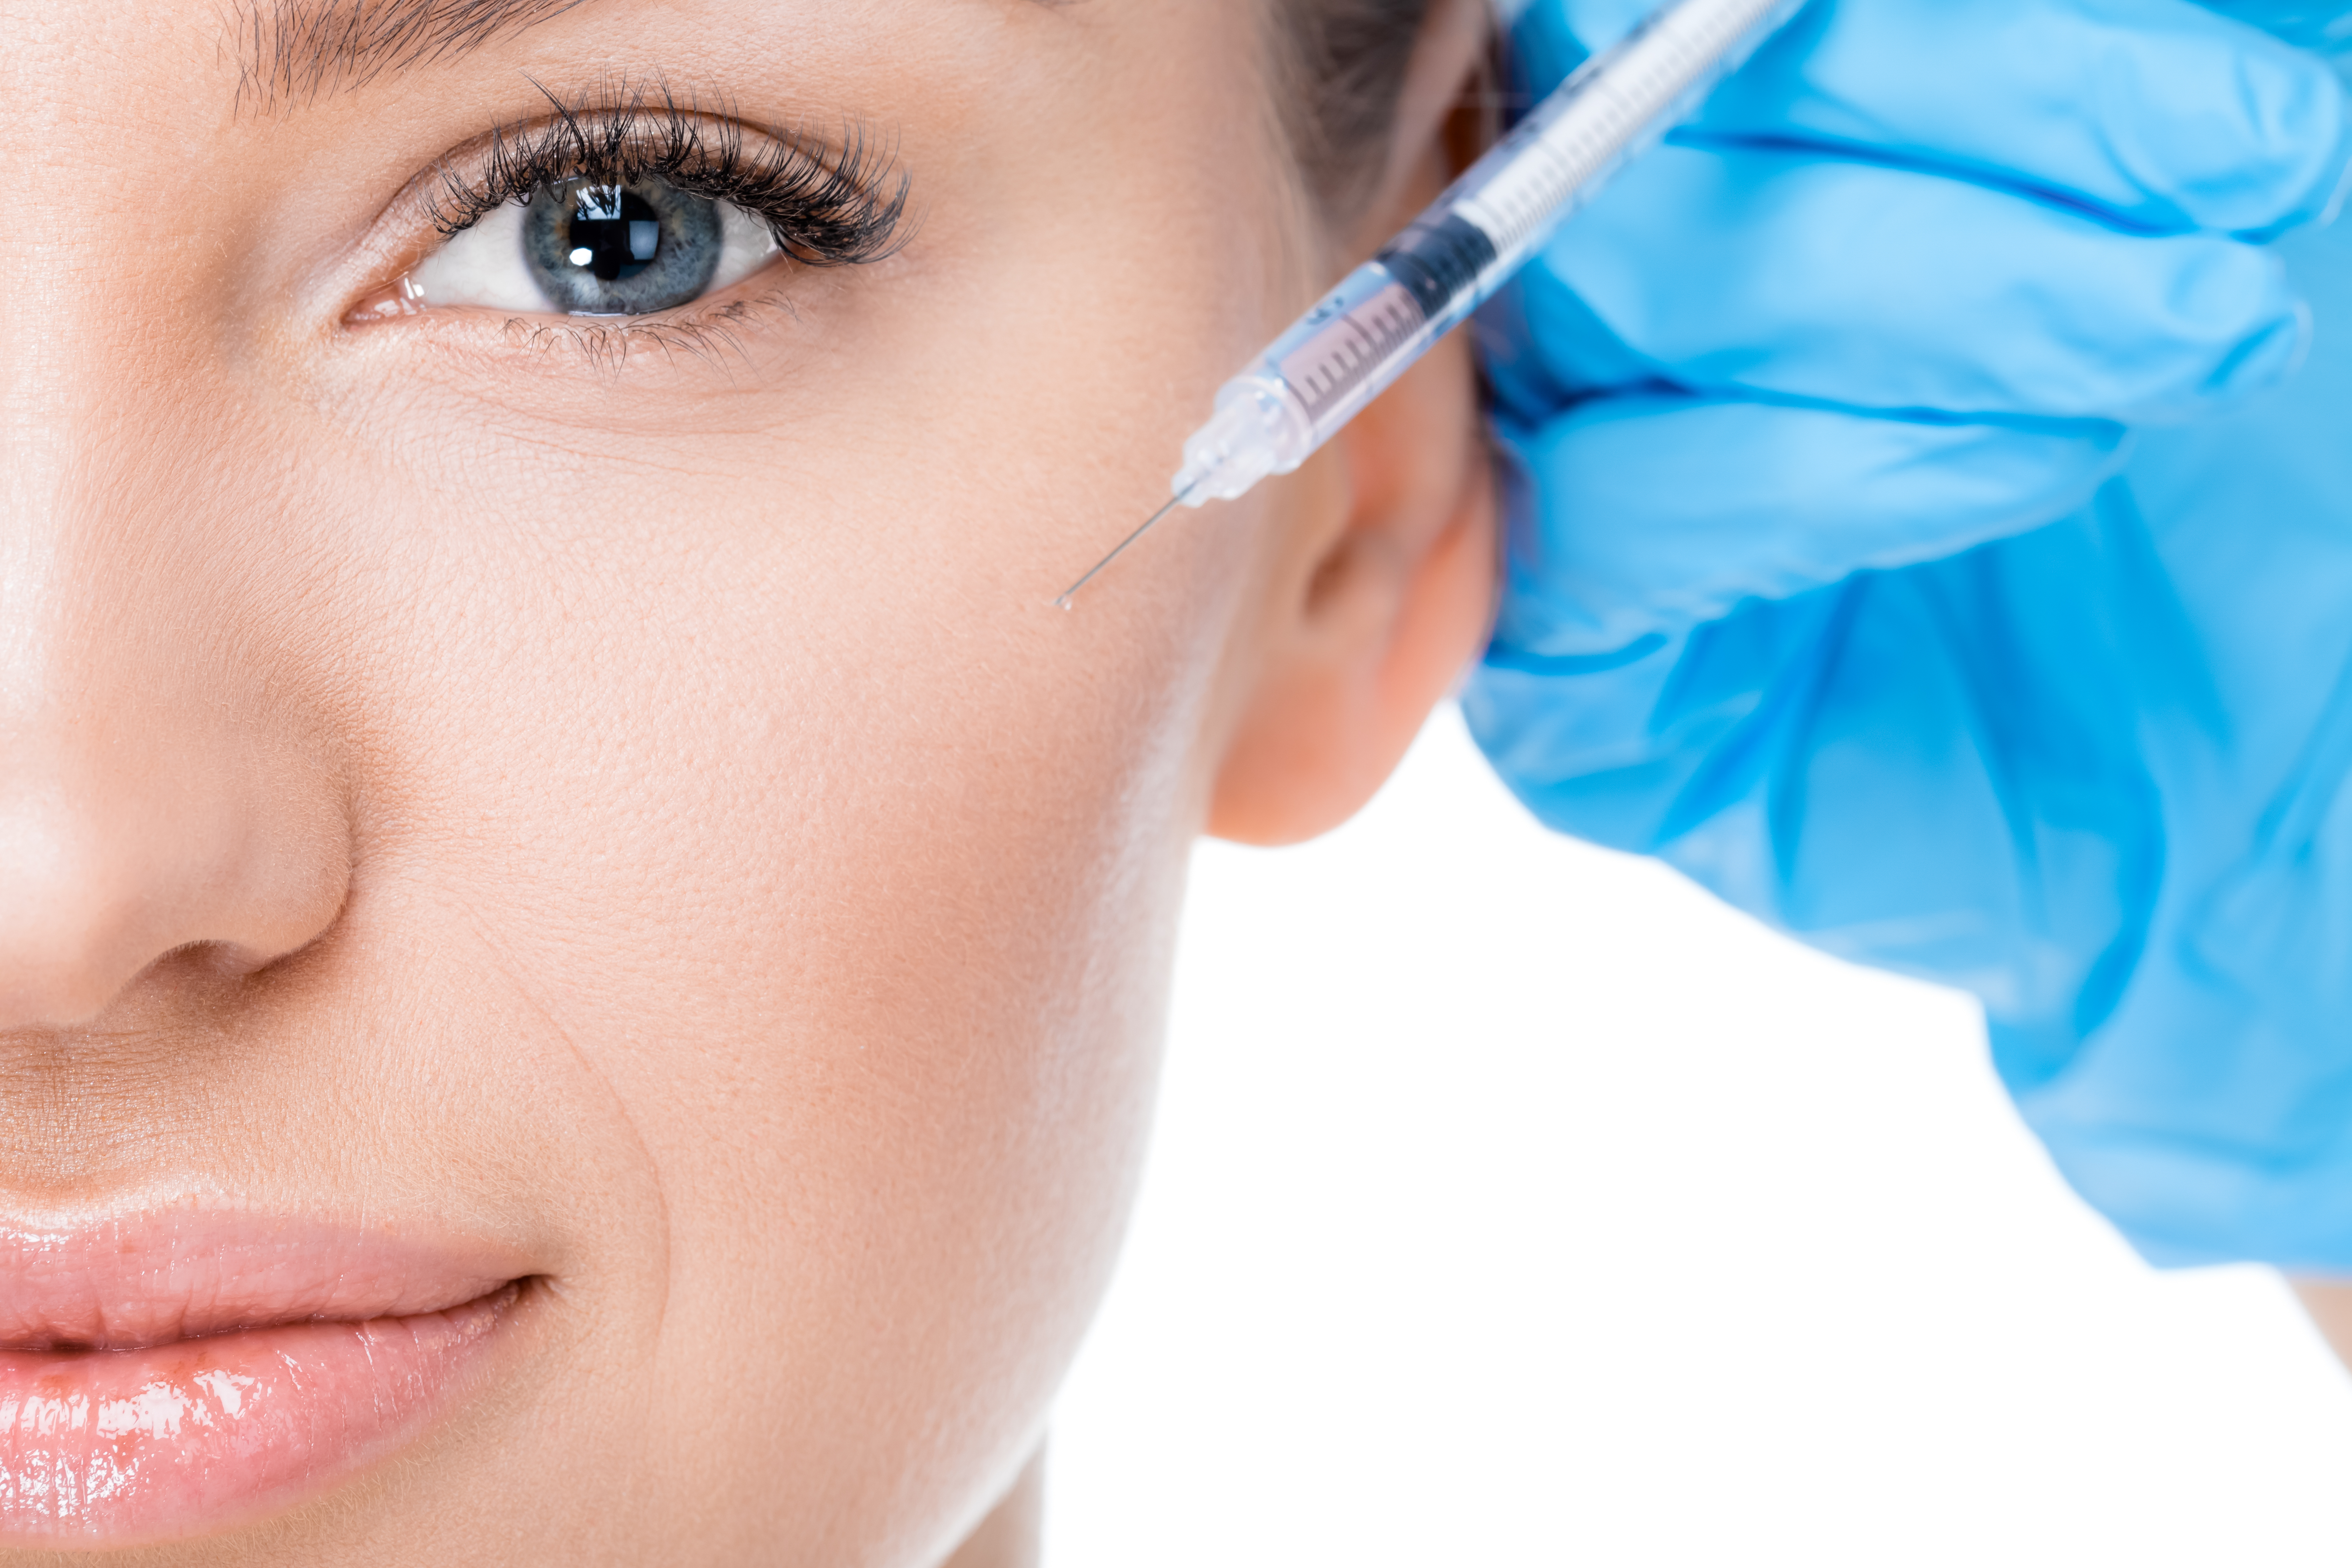 Where can I find botox in Orlando?